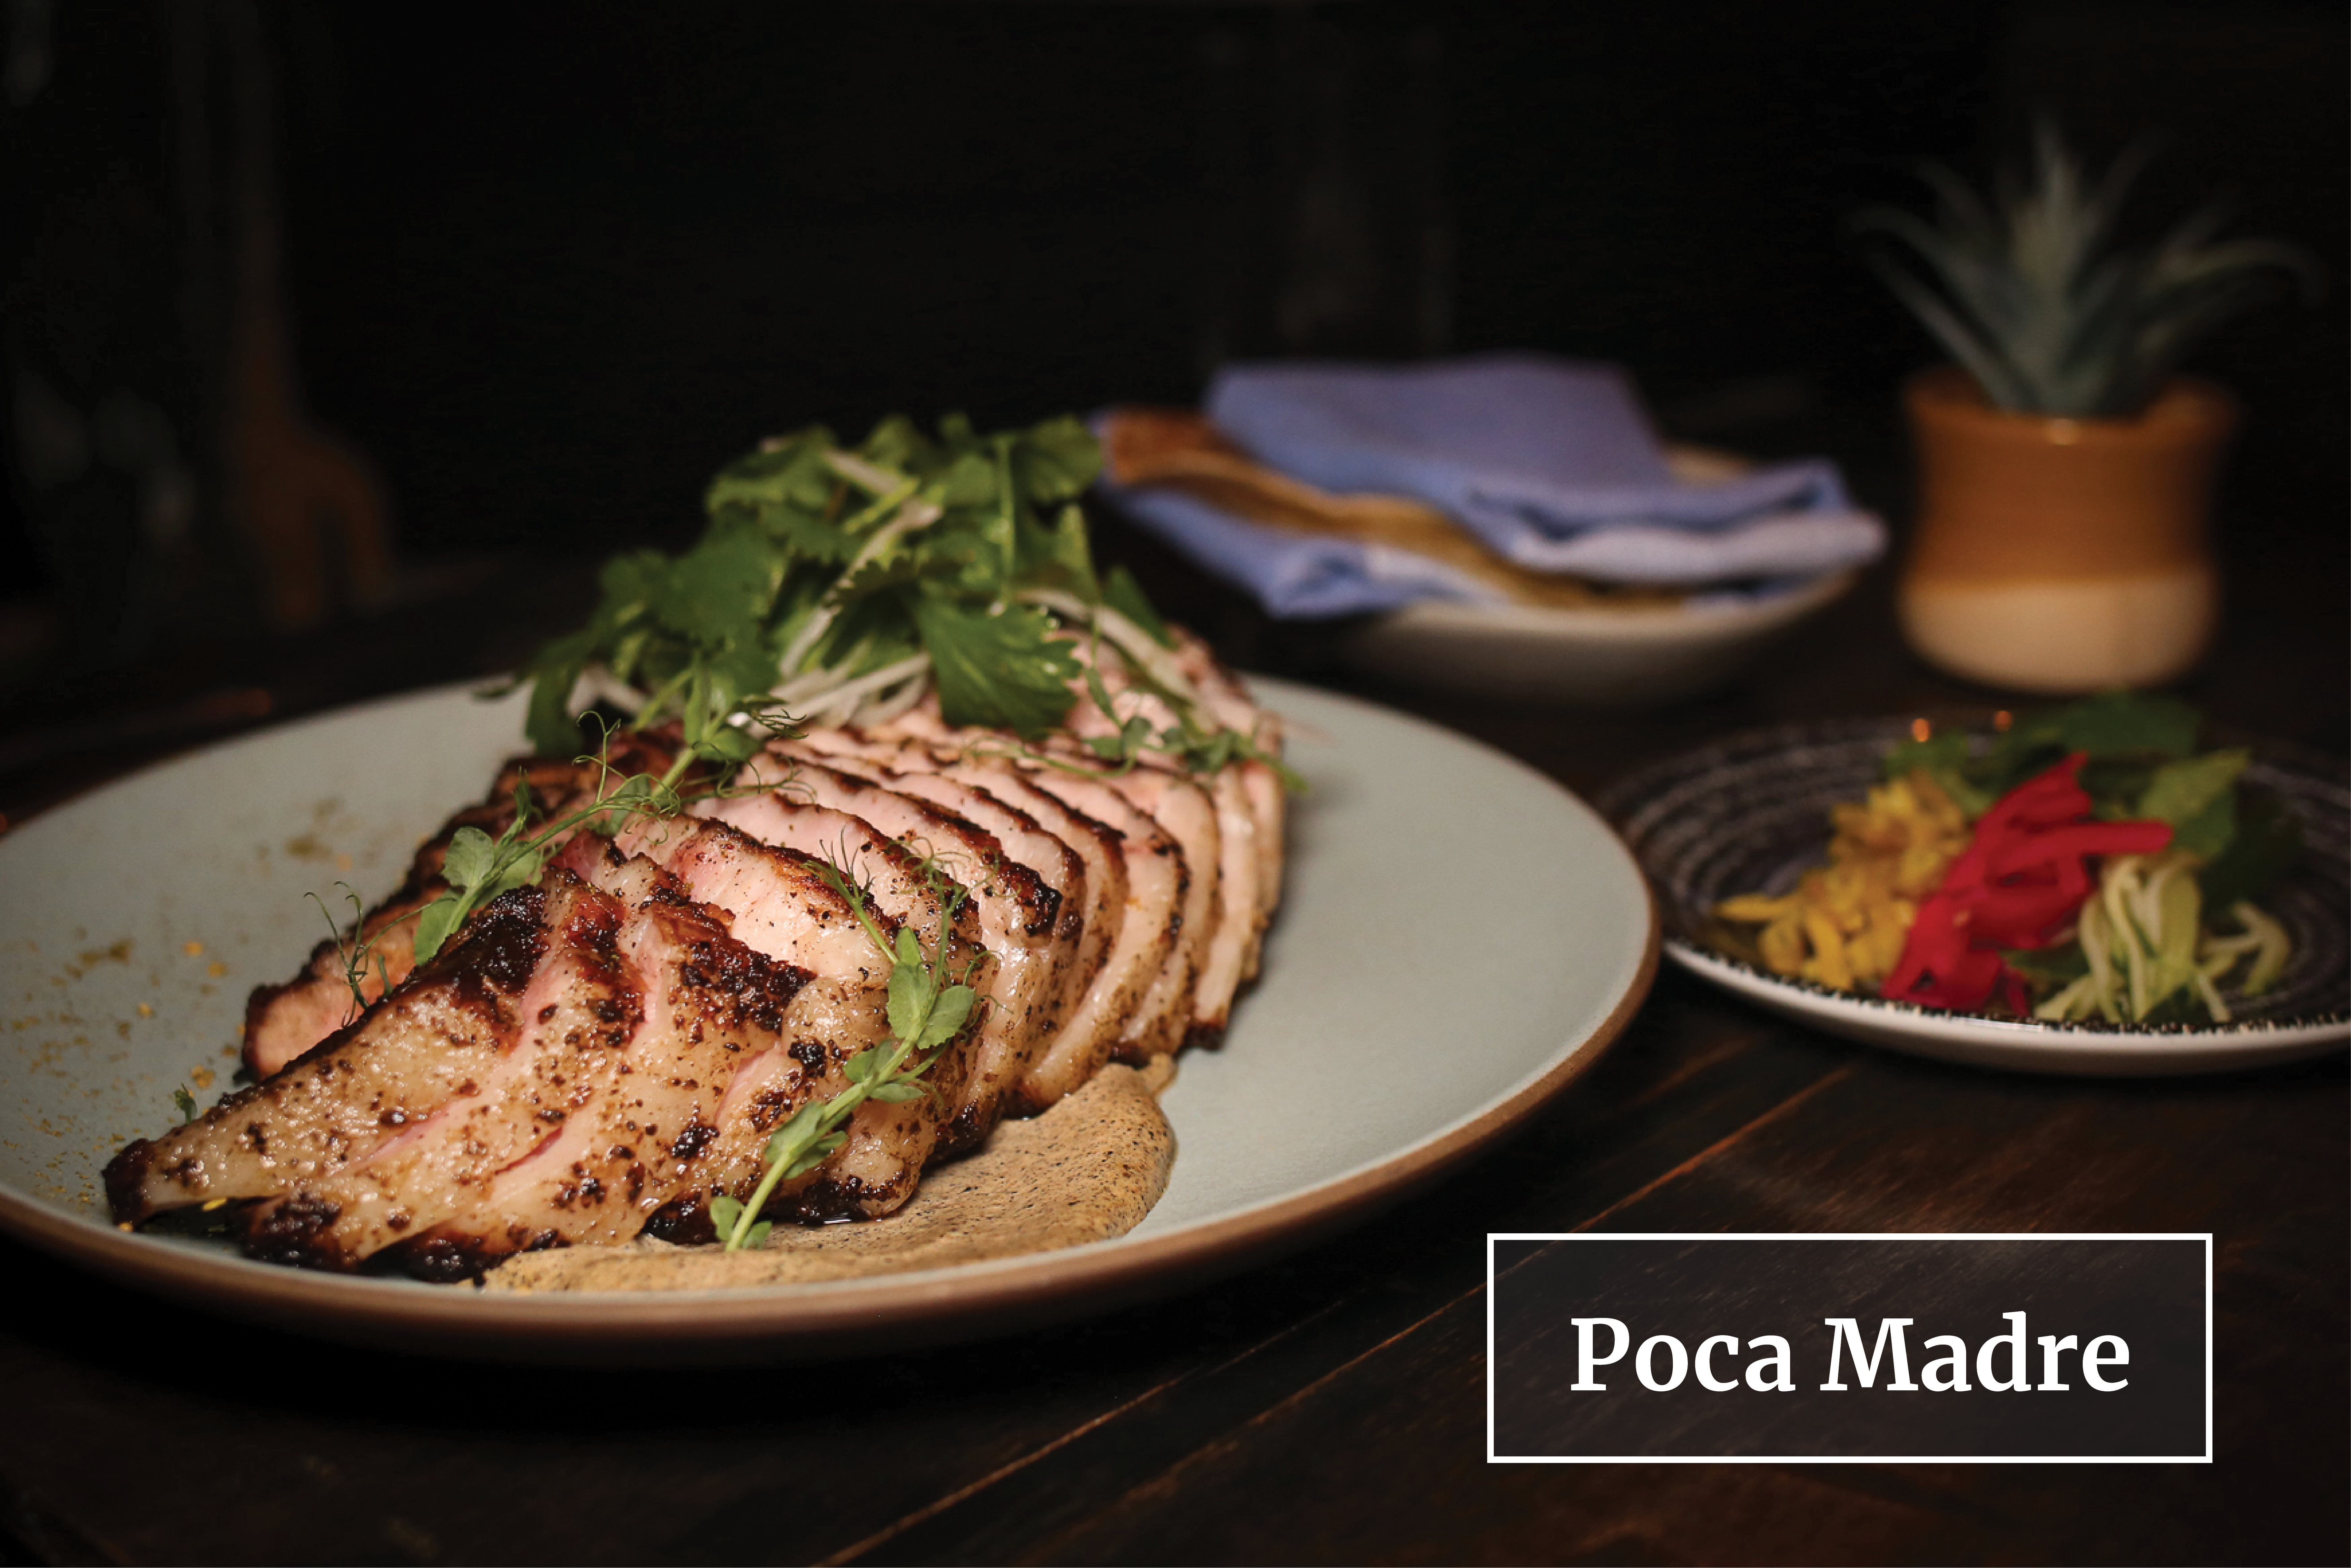 Poca Madre is a finalist for New Restaurant of the Year. (Image: Courtesy Poca Madre)